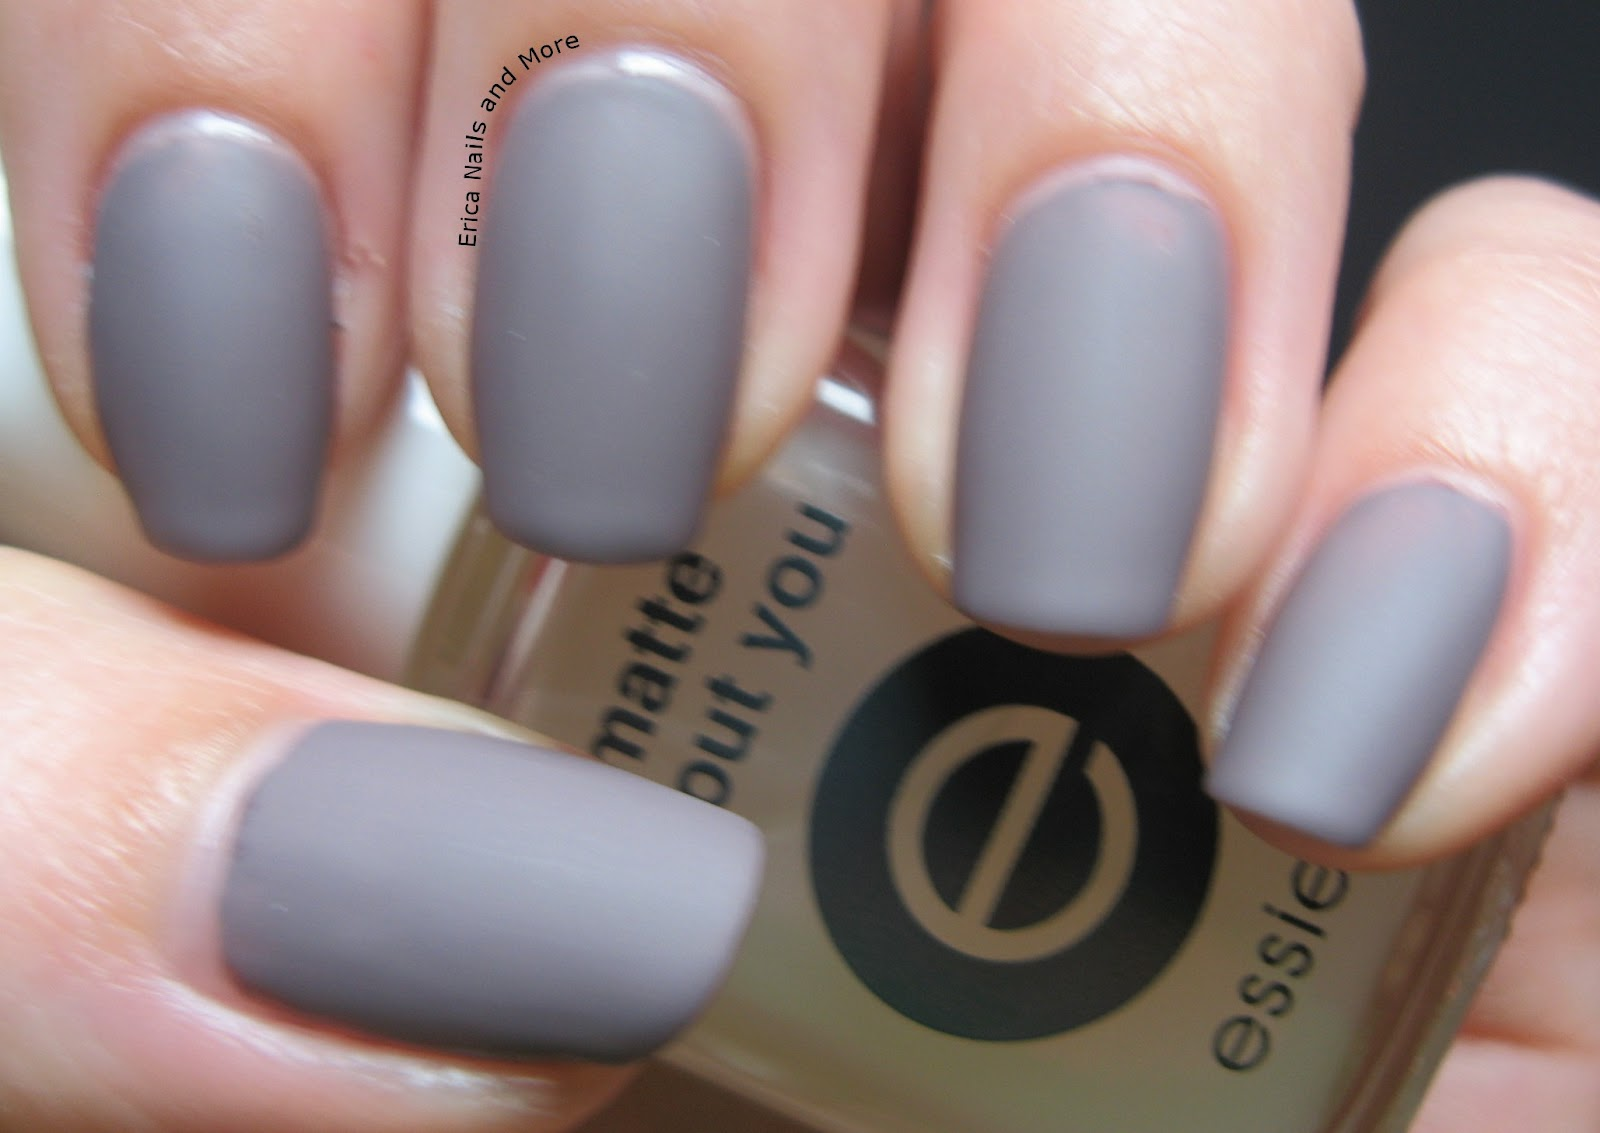 essie guys ★ essie® cream nail polish @ deals online nail polish amp care men who wish to secure rid of the pubic hair keep many ways to choose from.